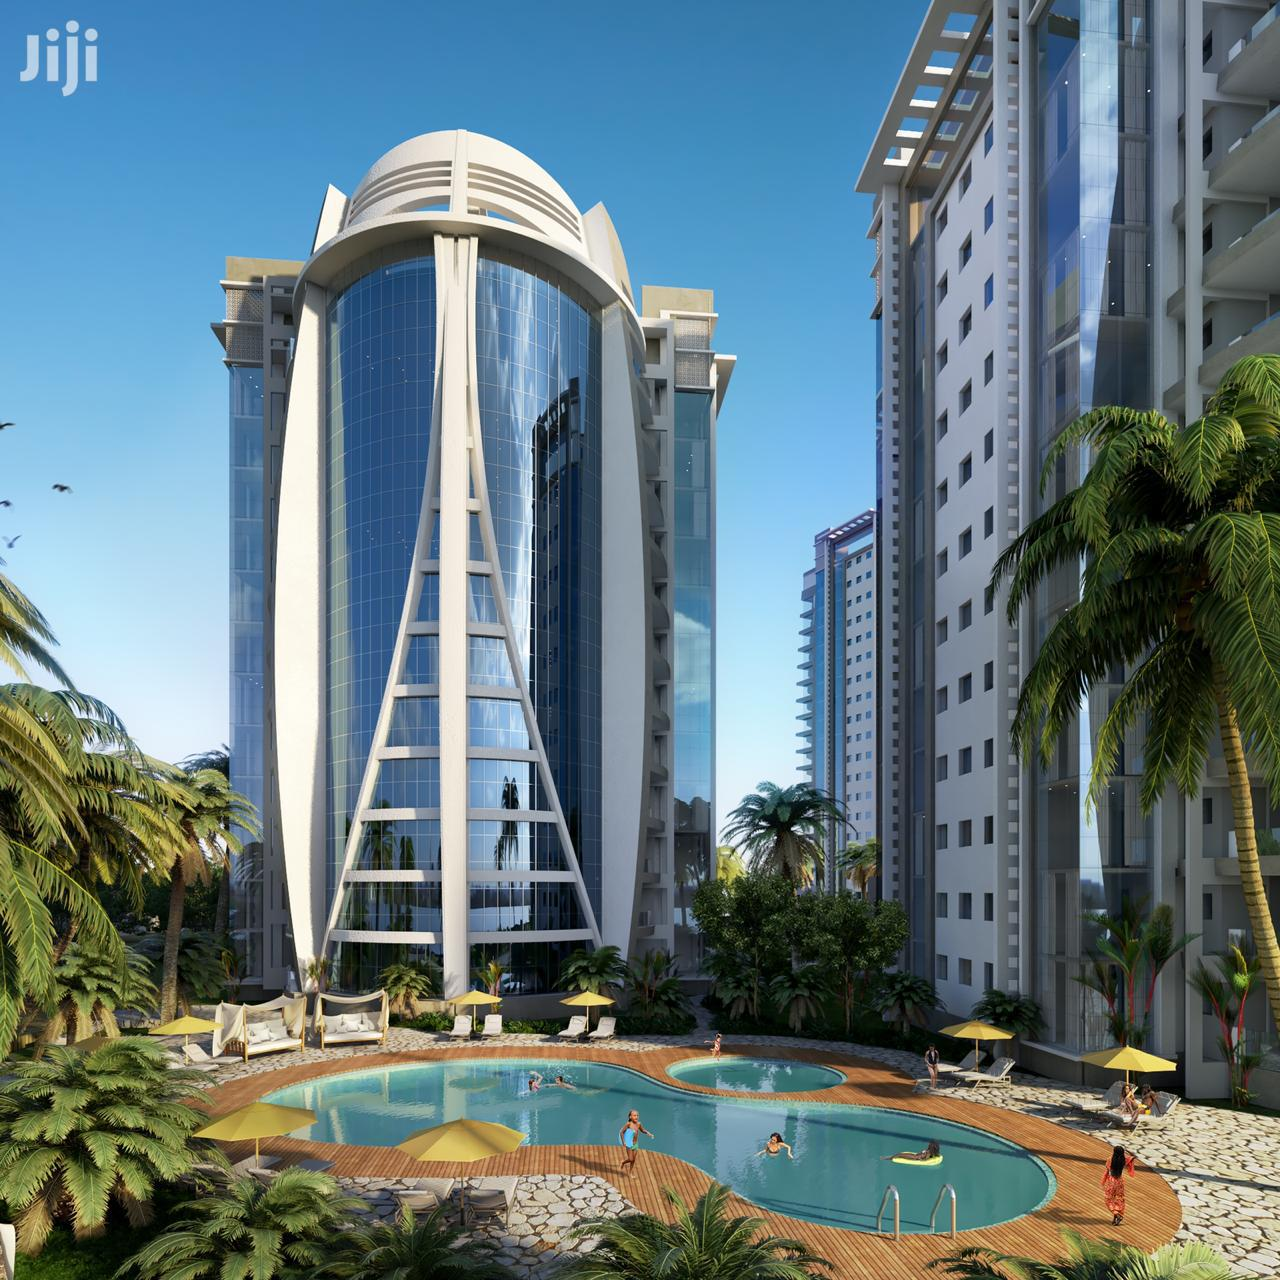 For Sale 2/3bedrooms Beach Flats